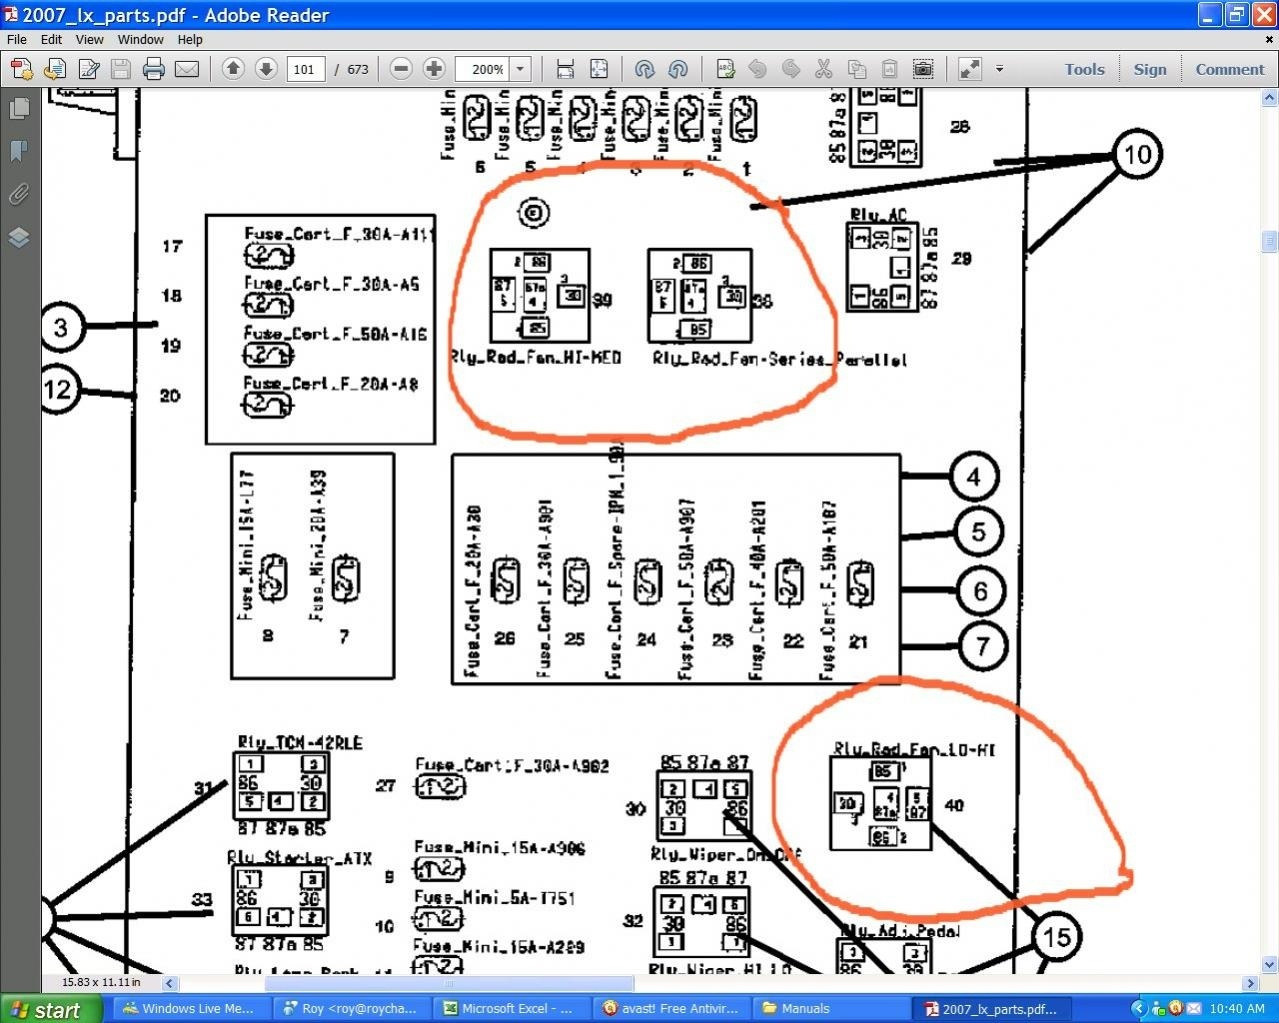 chrysler 300 ac control wiring diagram chrysler 300 questions - i have a 1280x853 fuse box and ... 2006 chrysler 300 ac wiring #10